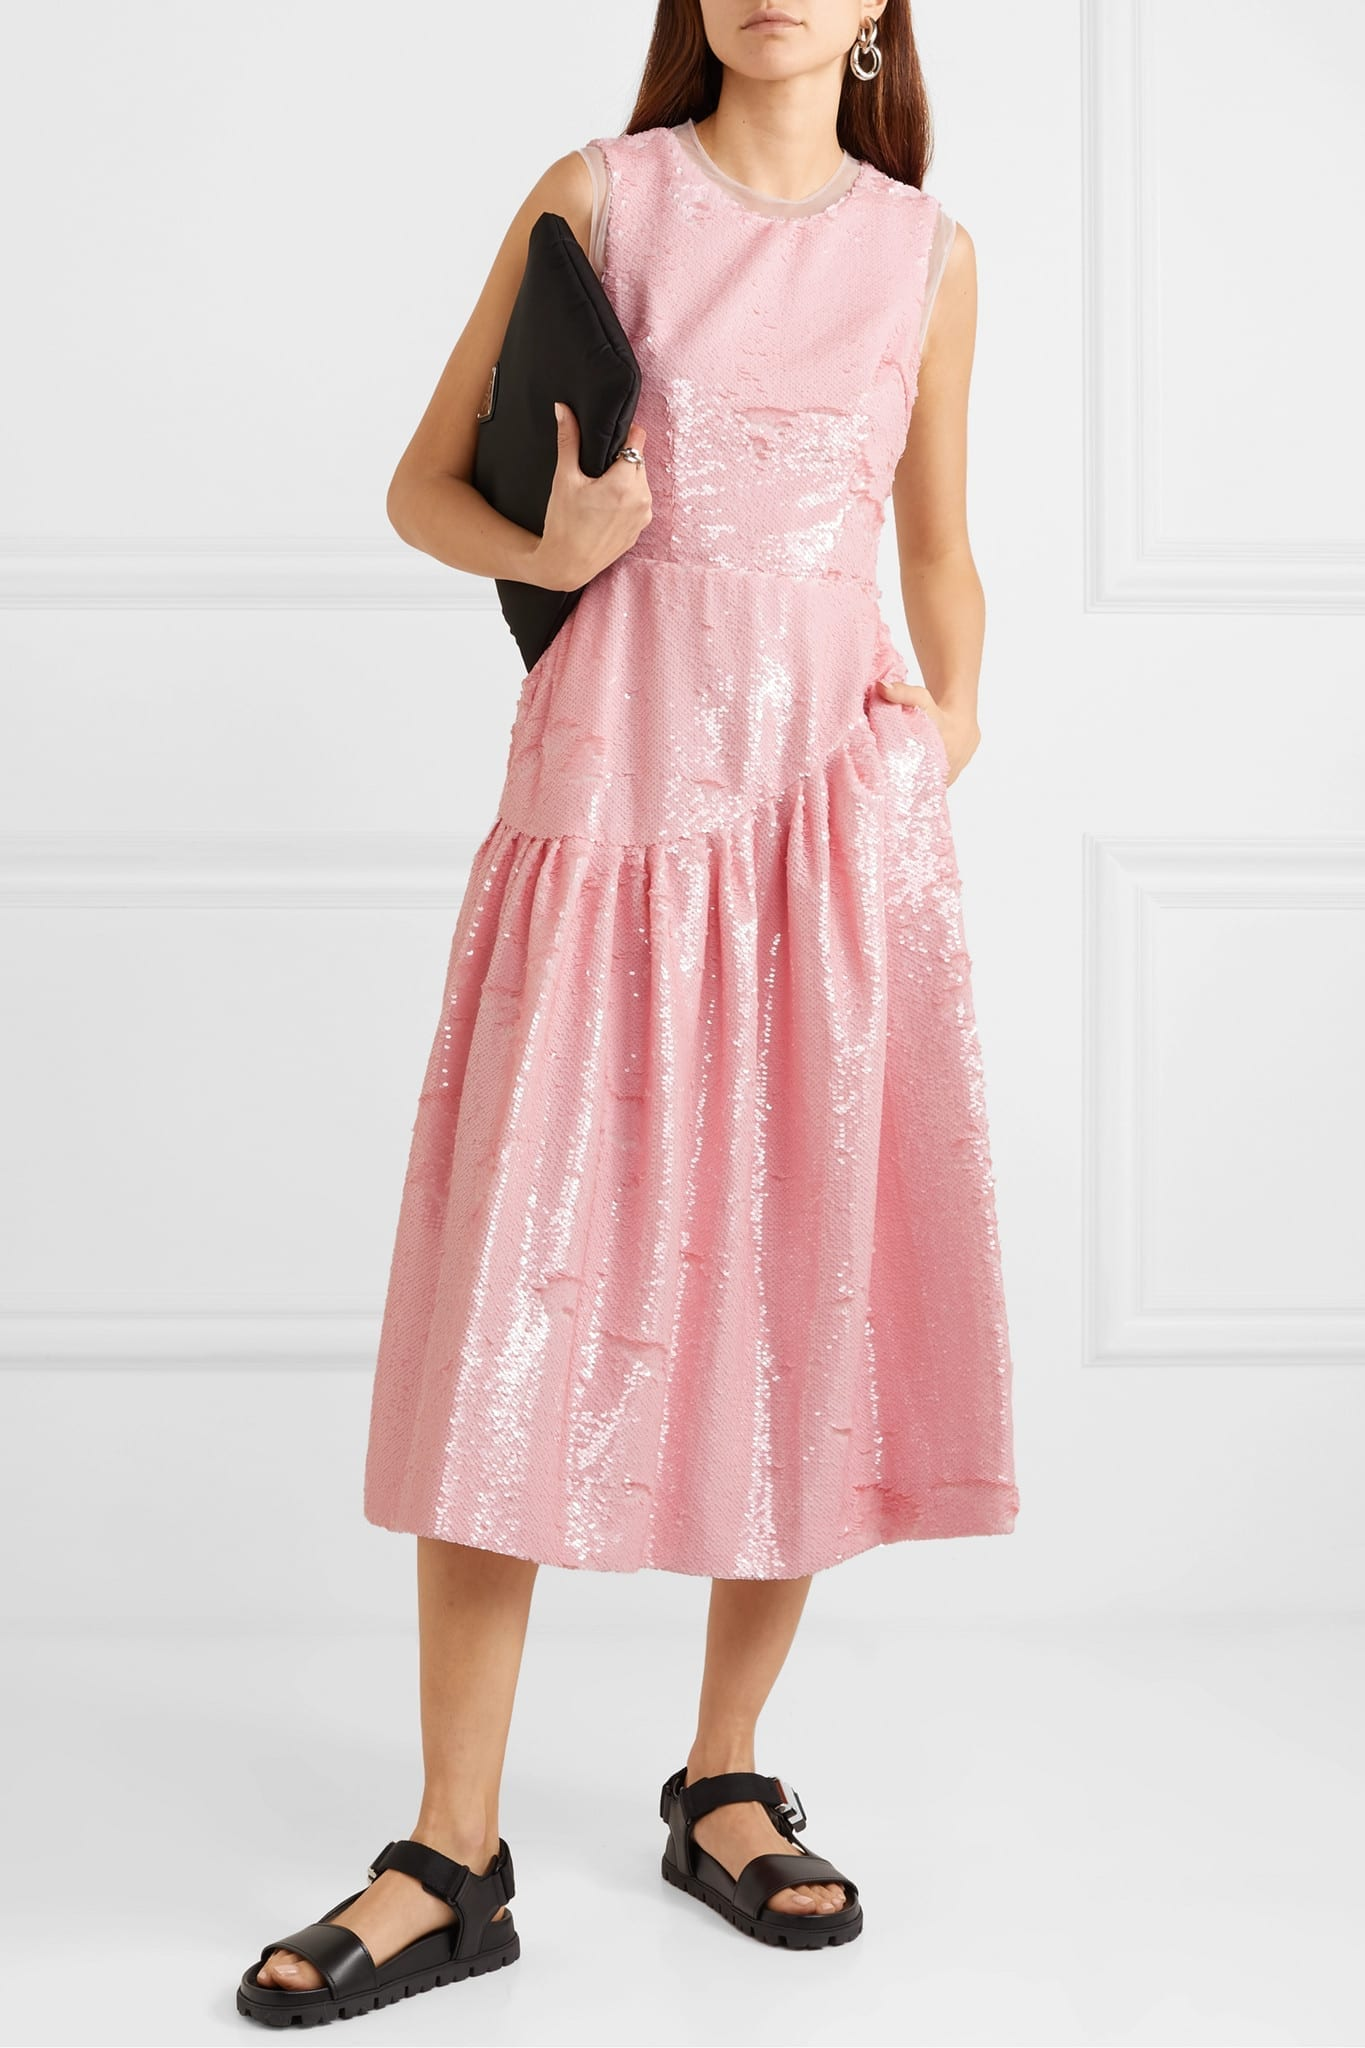 SIMONE ROCHA Frame Sequined Tulle Midi Dress